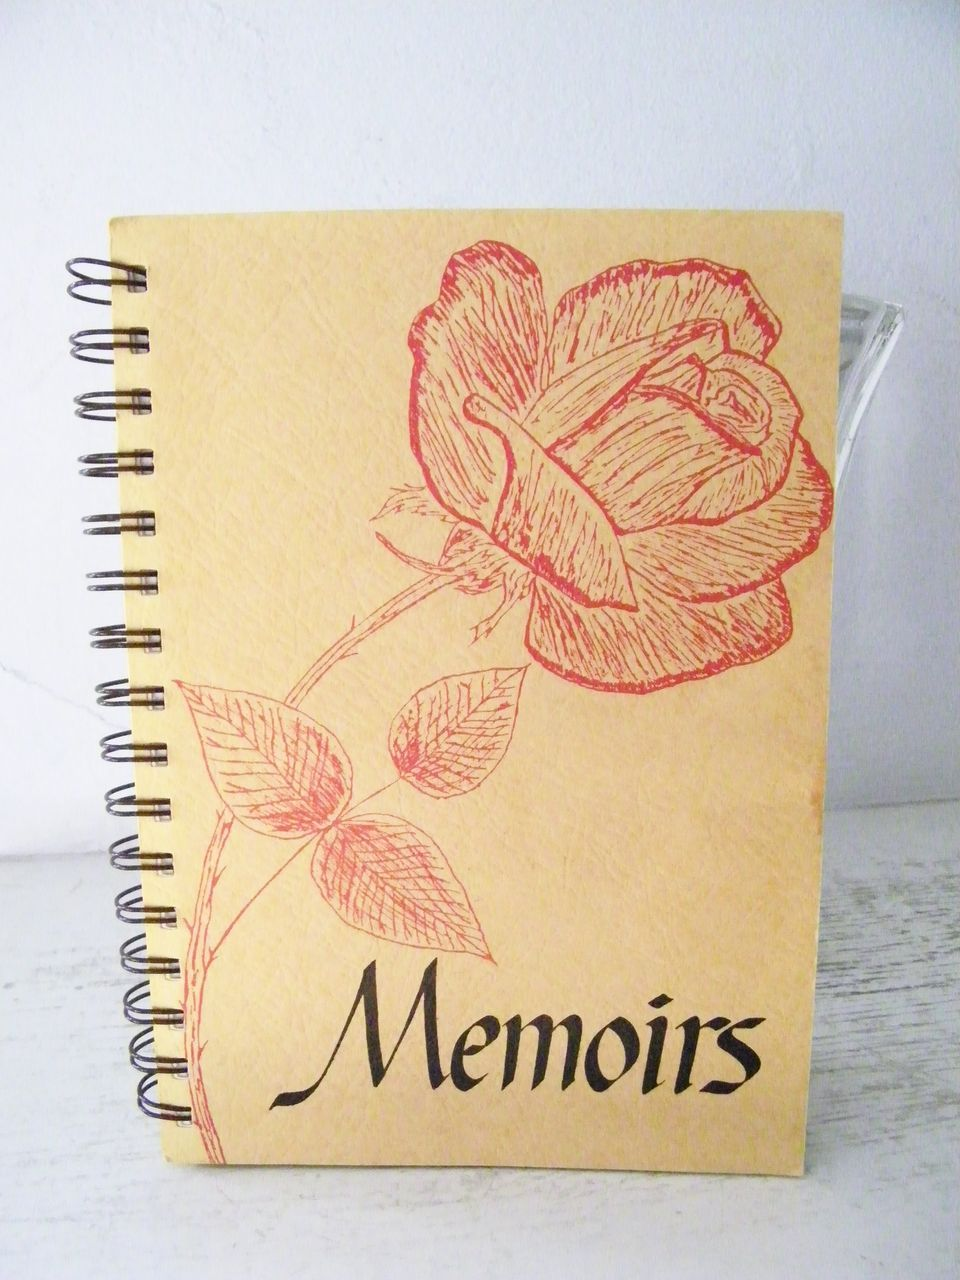 Memoirs a Memoir Book with Guidance